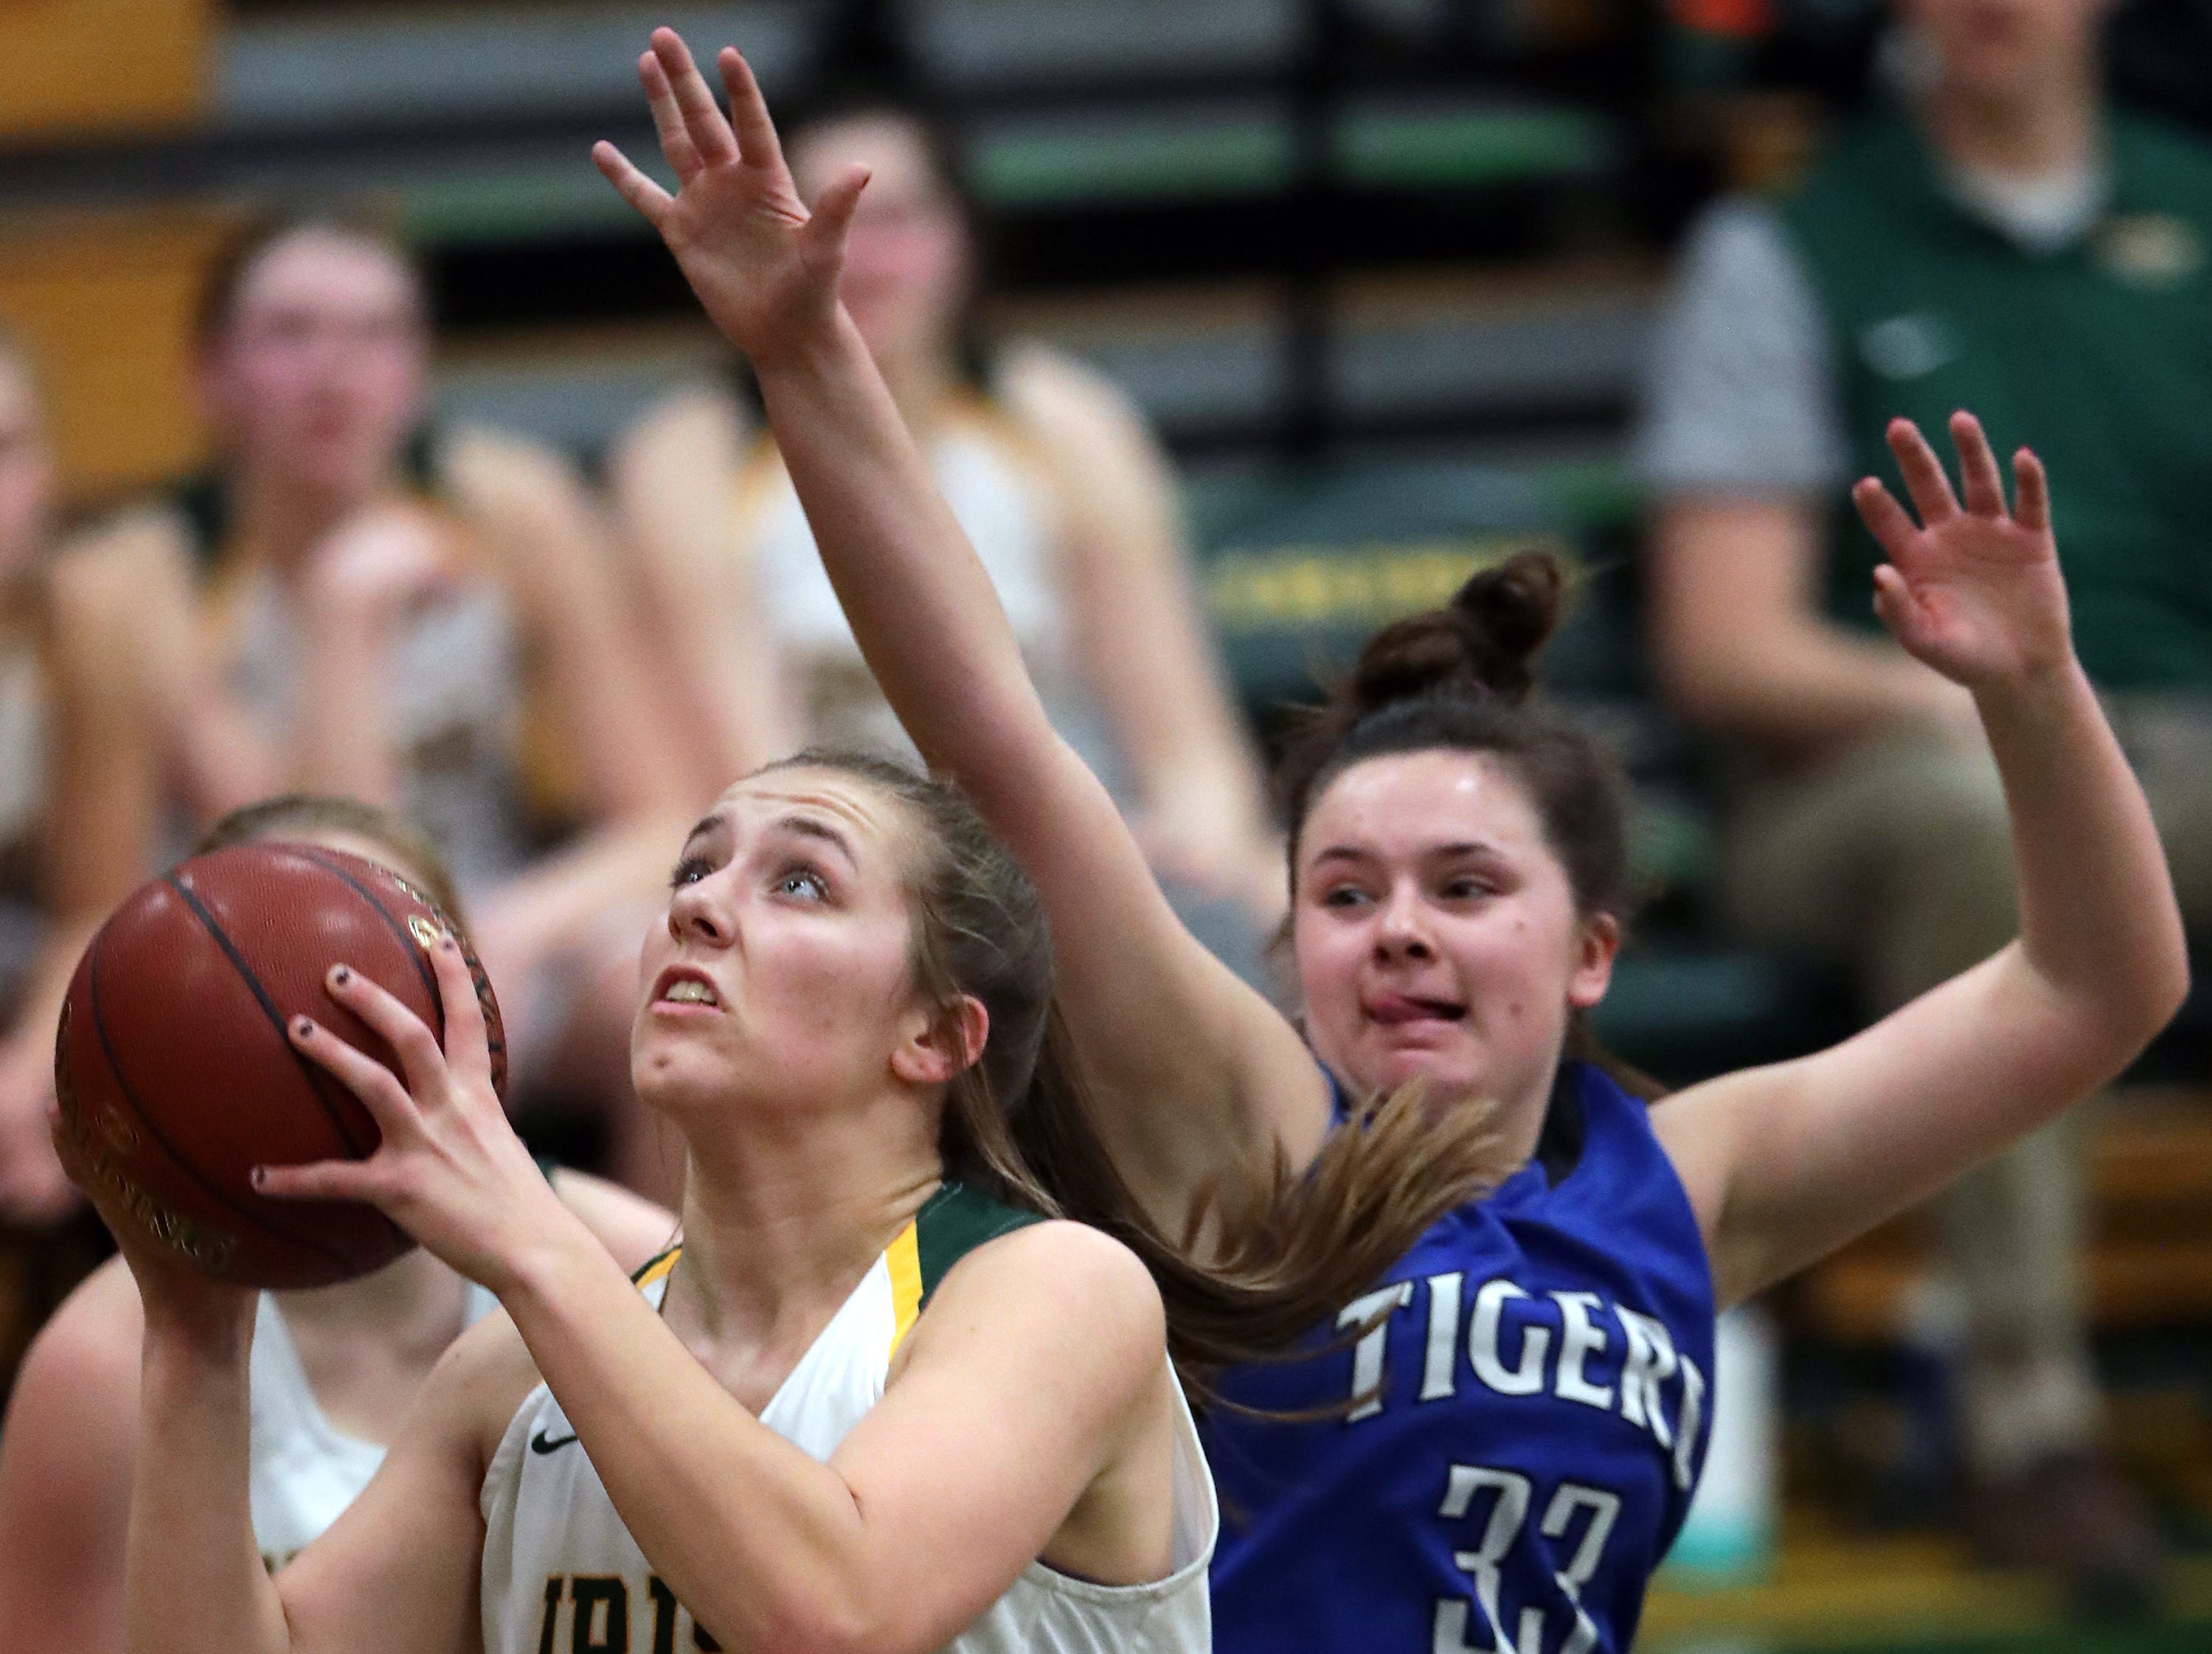 Freedom High School's #22 Taylor Haase against Wrightstown High School's #33 Dyna Van Egeren during their North Eastern Conference girls basketball game on Thursday, January 3, 2019, in Freedom, Wis. Freedom defeated Wrightstown 54 to 34.Wm. Glasheen/USA TODAY NETWORK-Wisconsin.